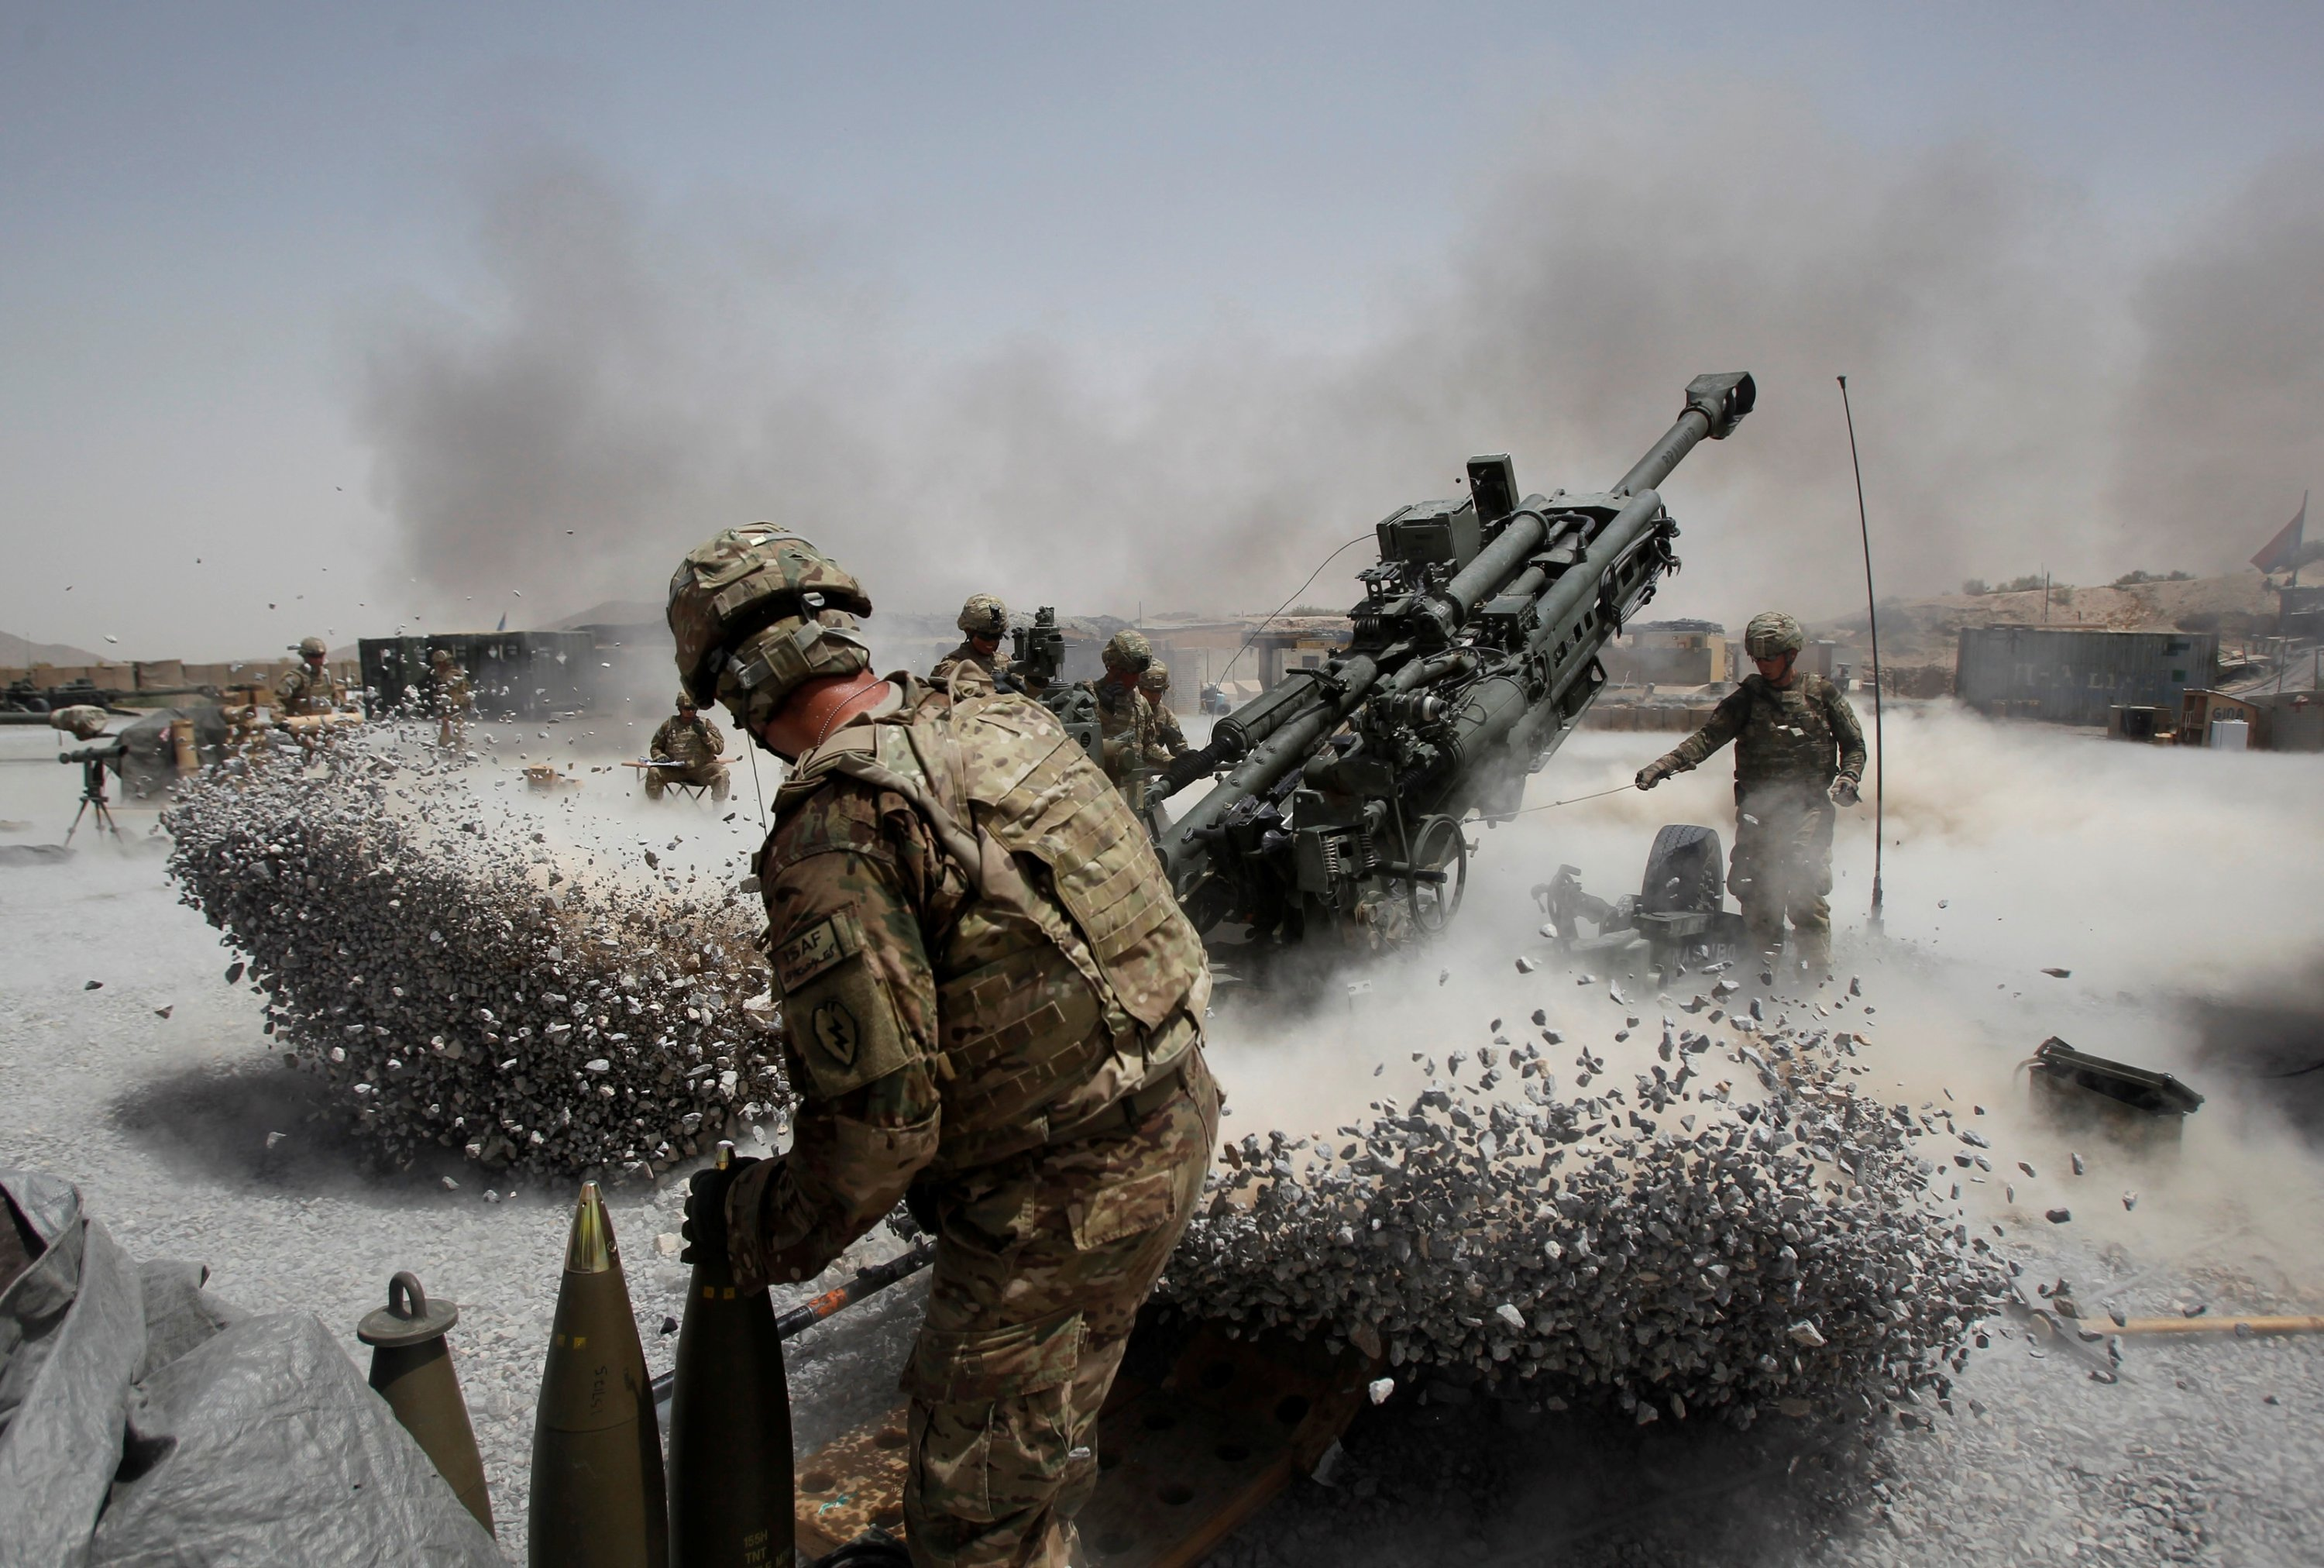 U.S. Army soldiers fire a howitzer at Sperwan Ghar in the Panjwai district of Kandahar province, southern Afghanistan, June 12, 2011. (REUTERS Photo)